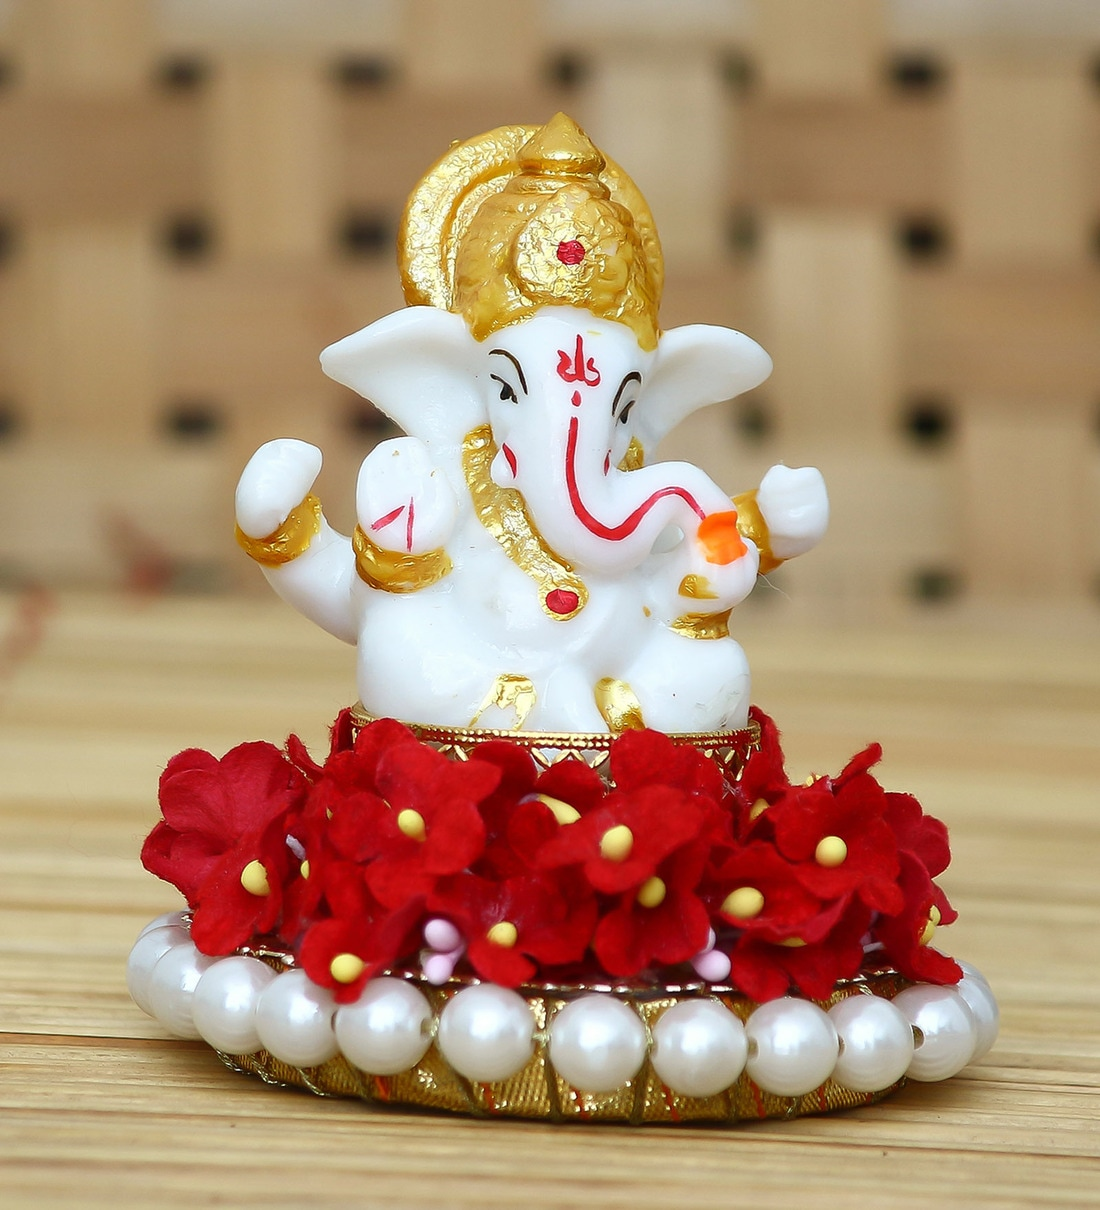 Buy White Metal Lord Ganesha Idol On Decorative Handcrafted Plate